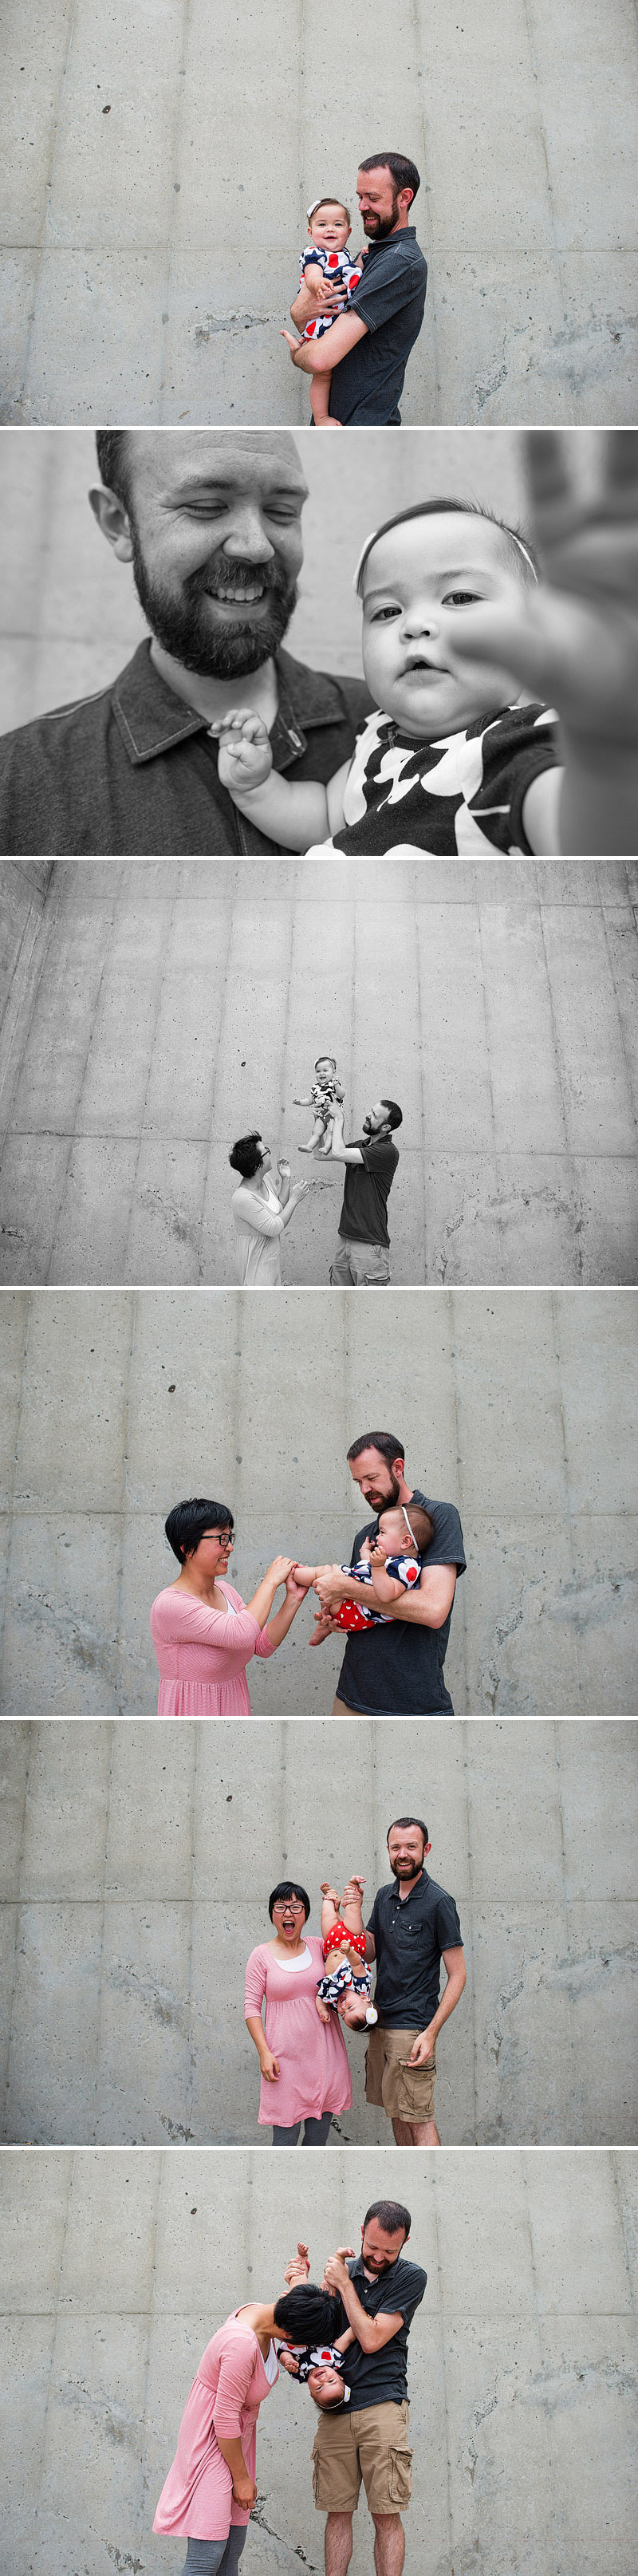 Family portraits in Kansas City.